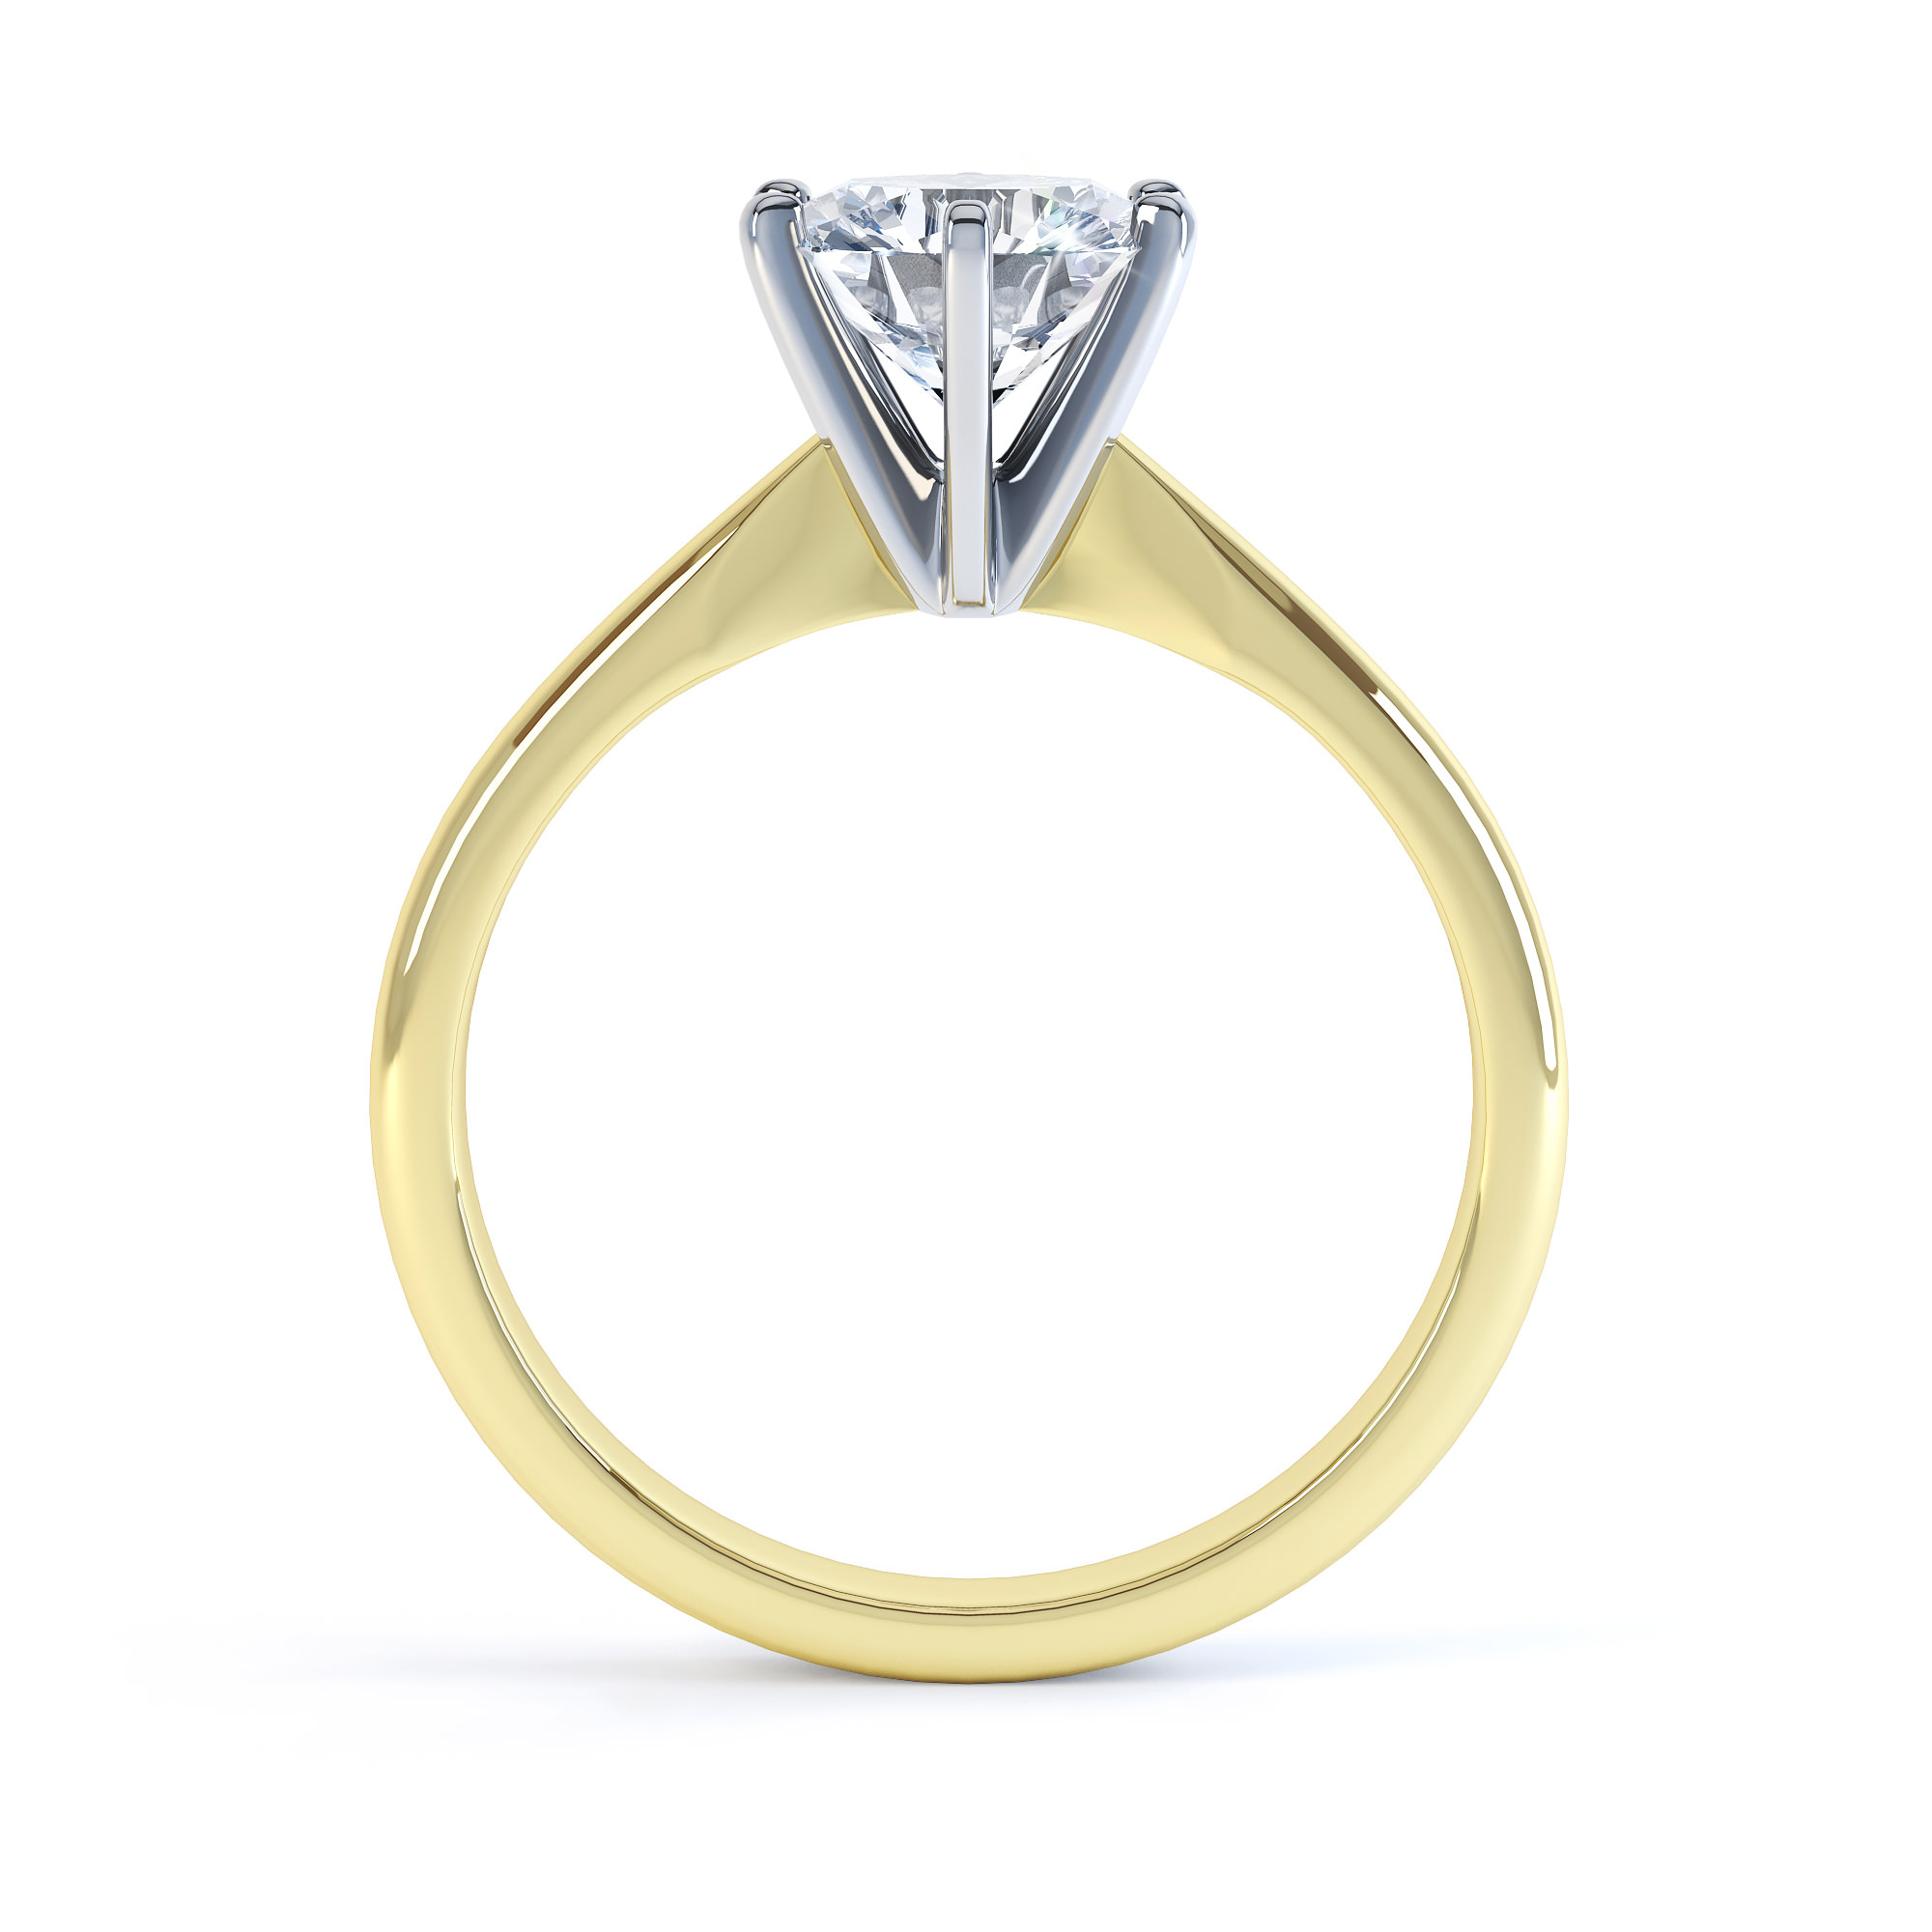 6 Claw Open Solitaire Diamond Ring